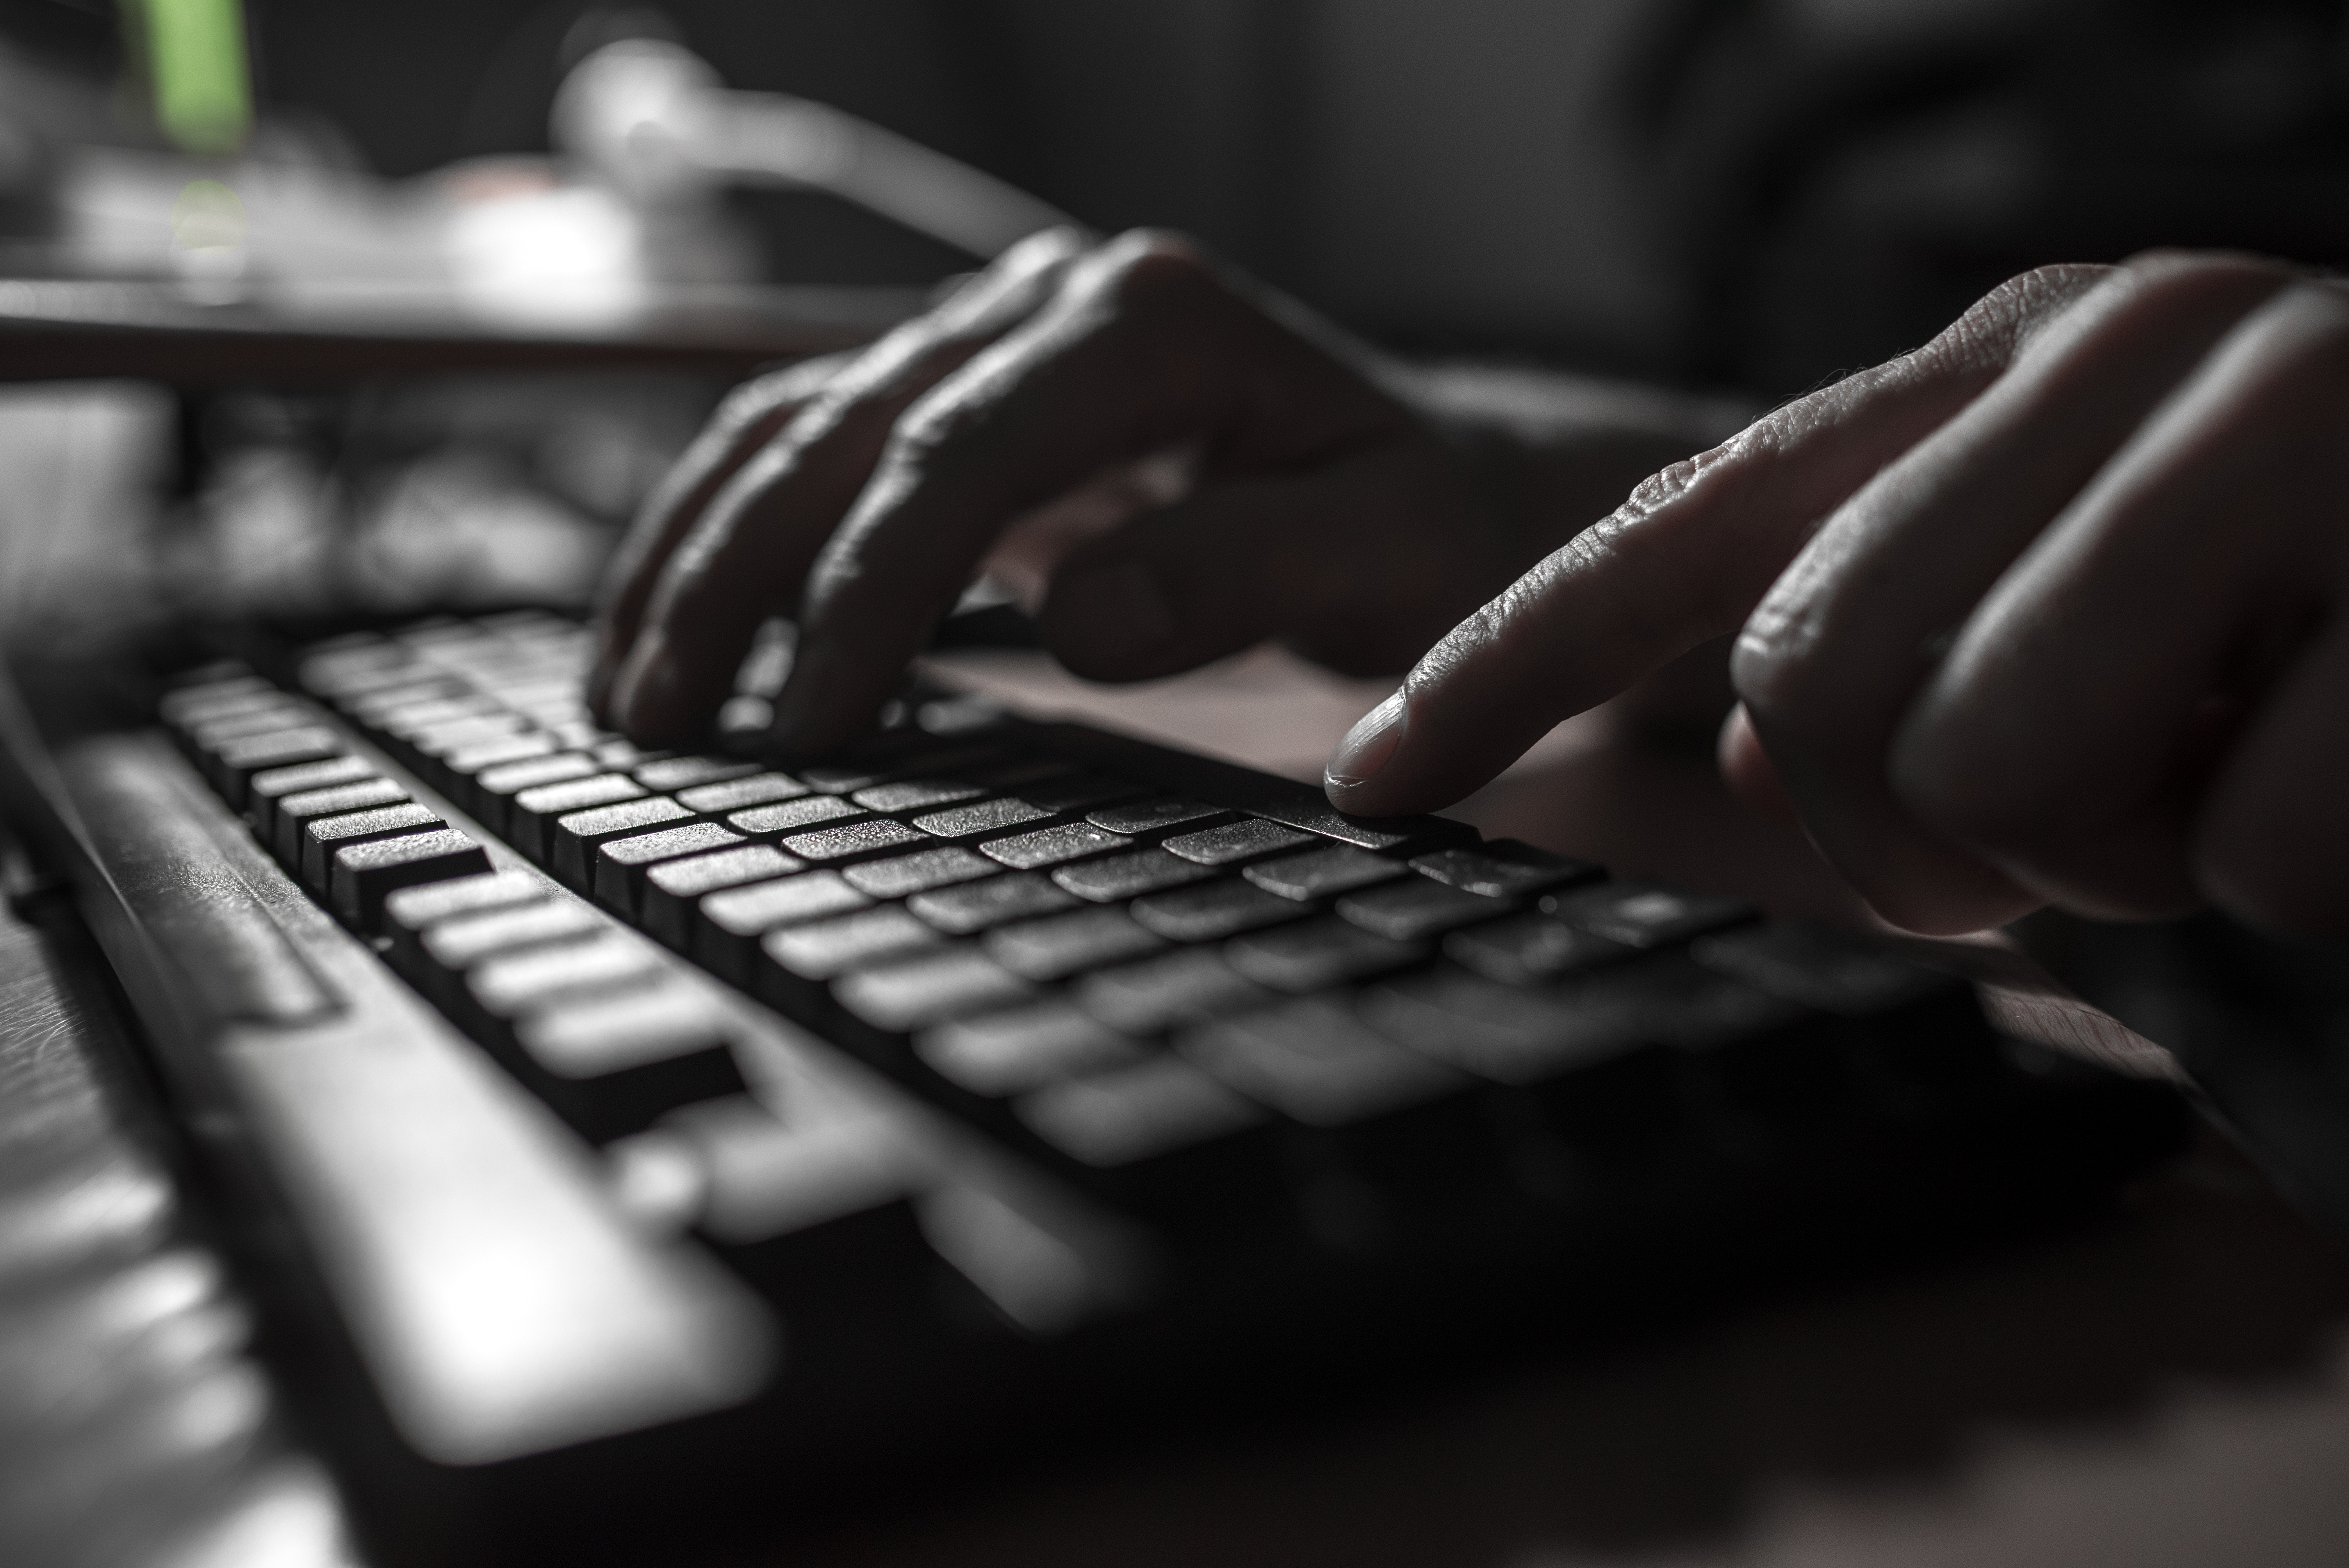 This is how people can stalk you through your computer or